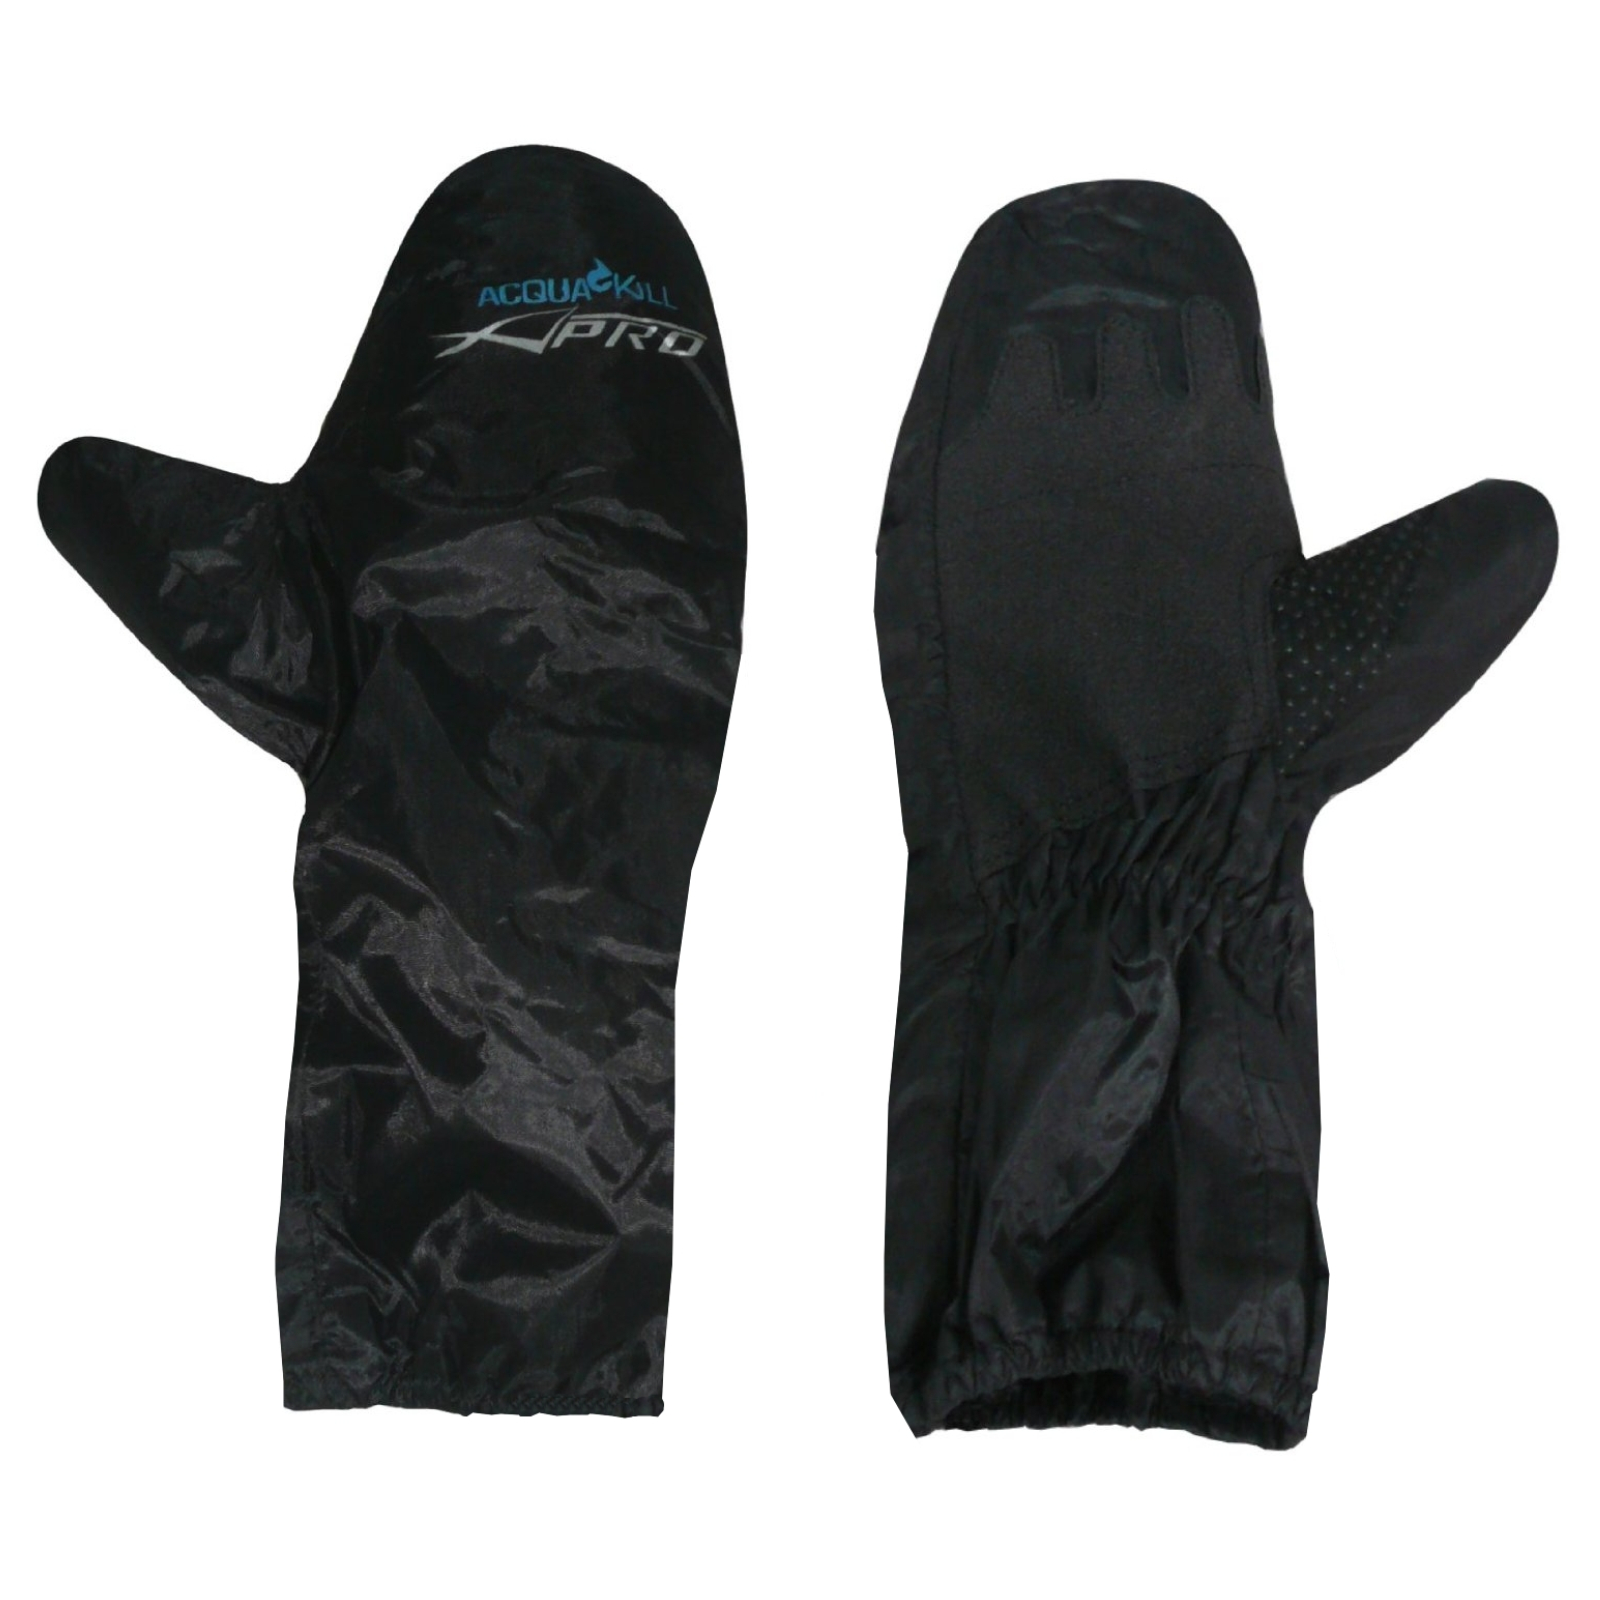 Gloves Cover 100% Waterproof Over Mittens Motorcycle ...